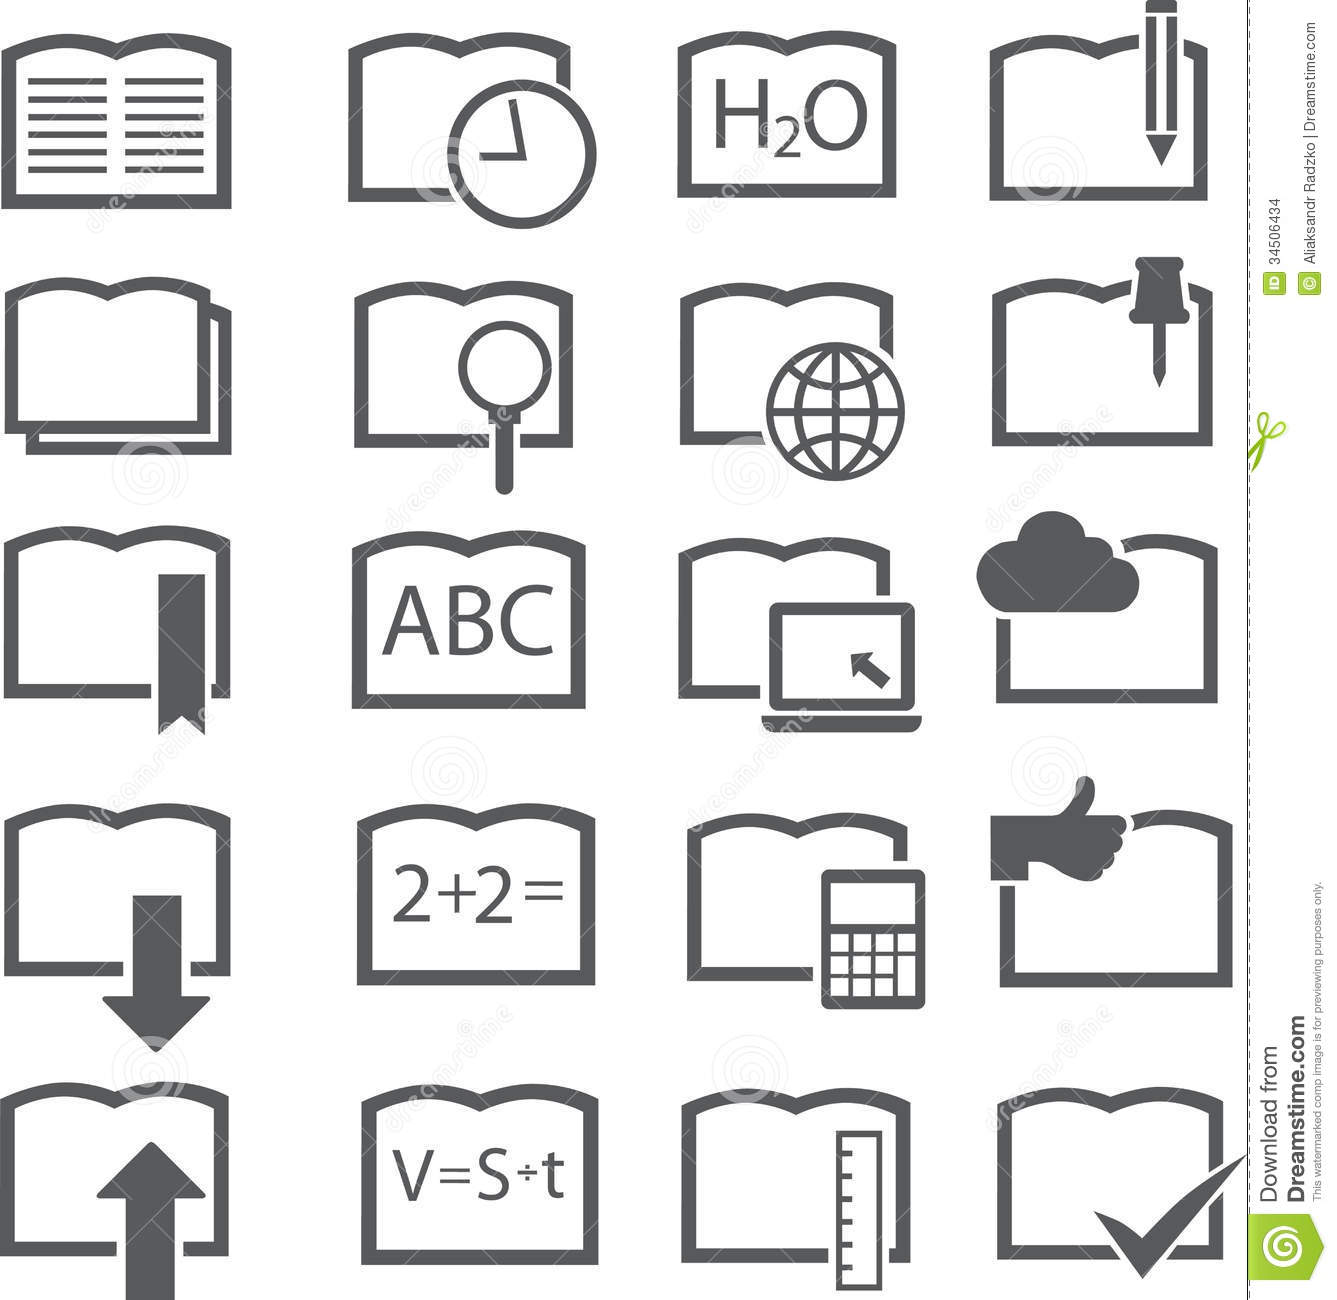 20 Book Icons Of Grey Colour Stock Vector - Illustration of book ...